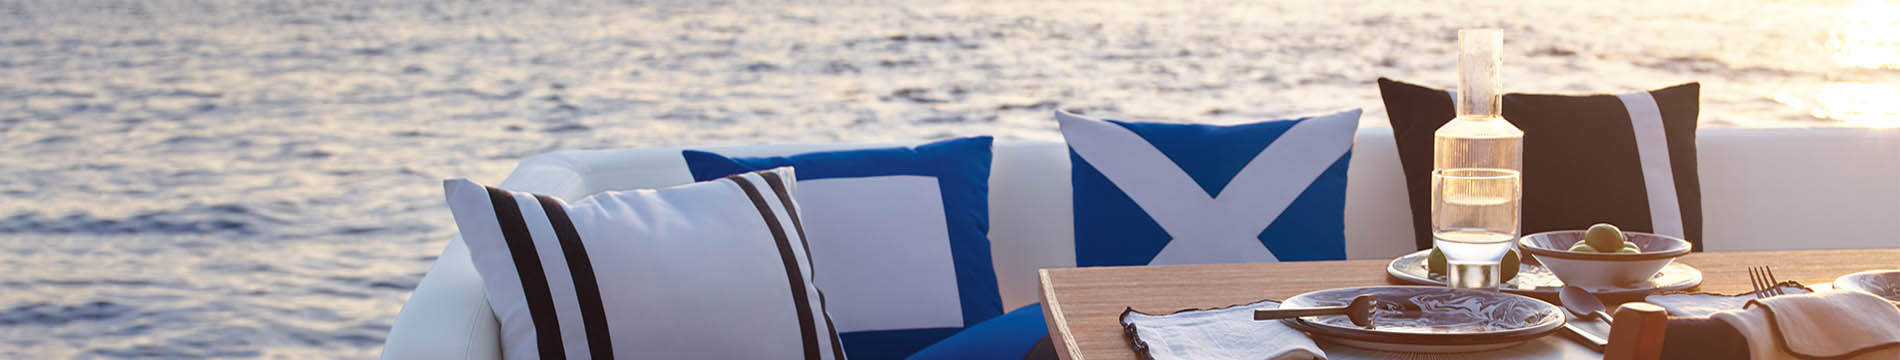 Sunbrella marine fabrics perfect the look of your boat